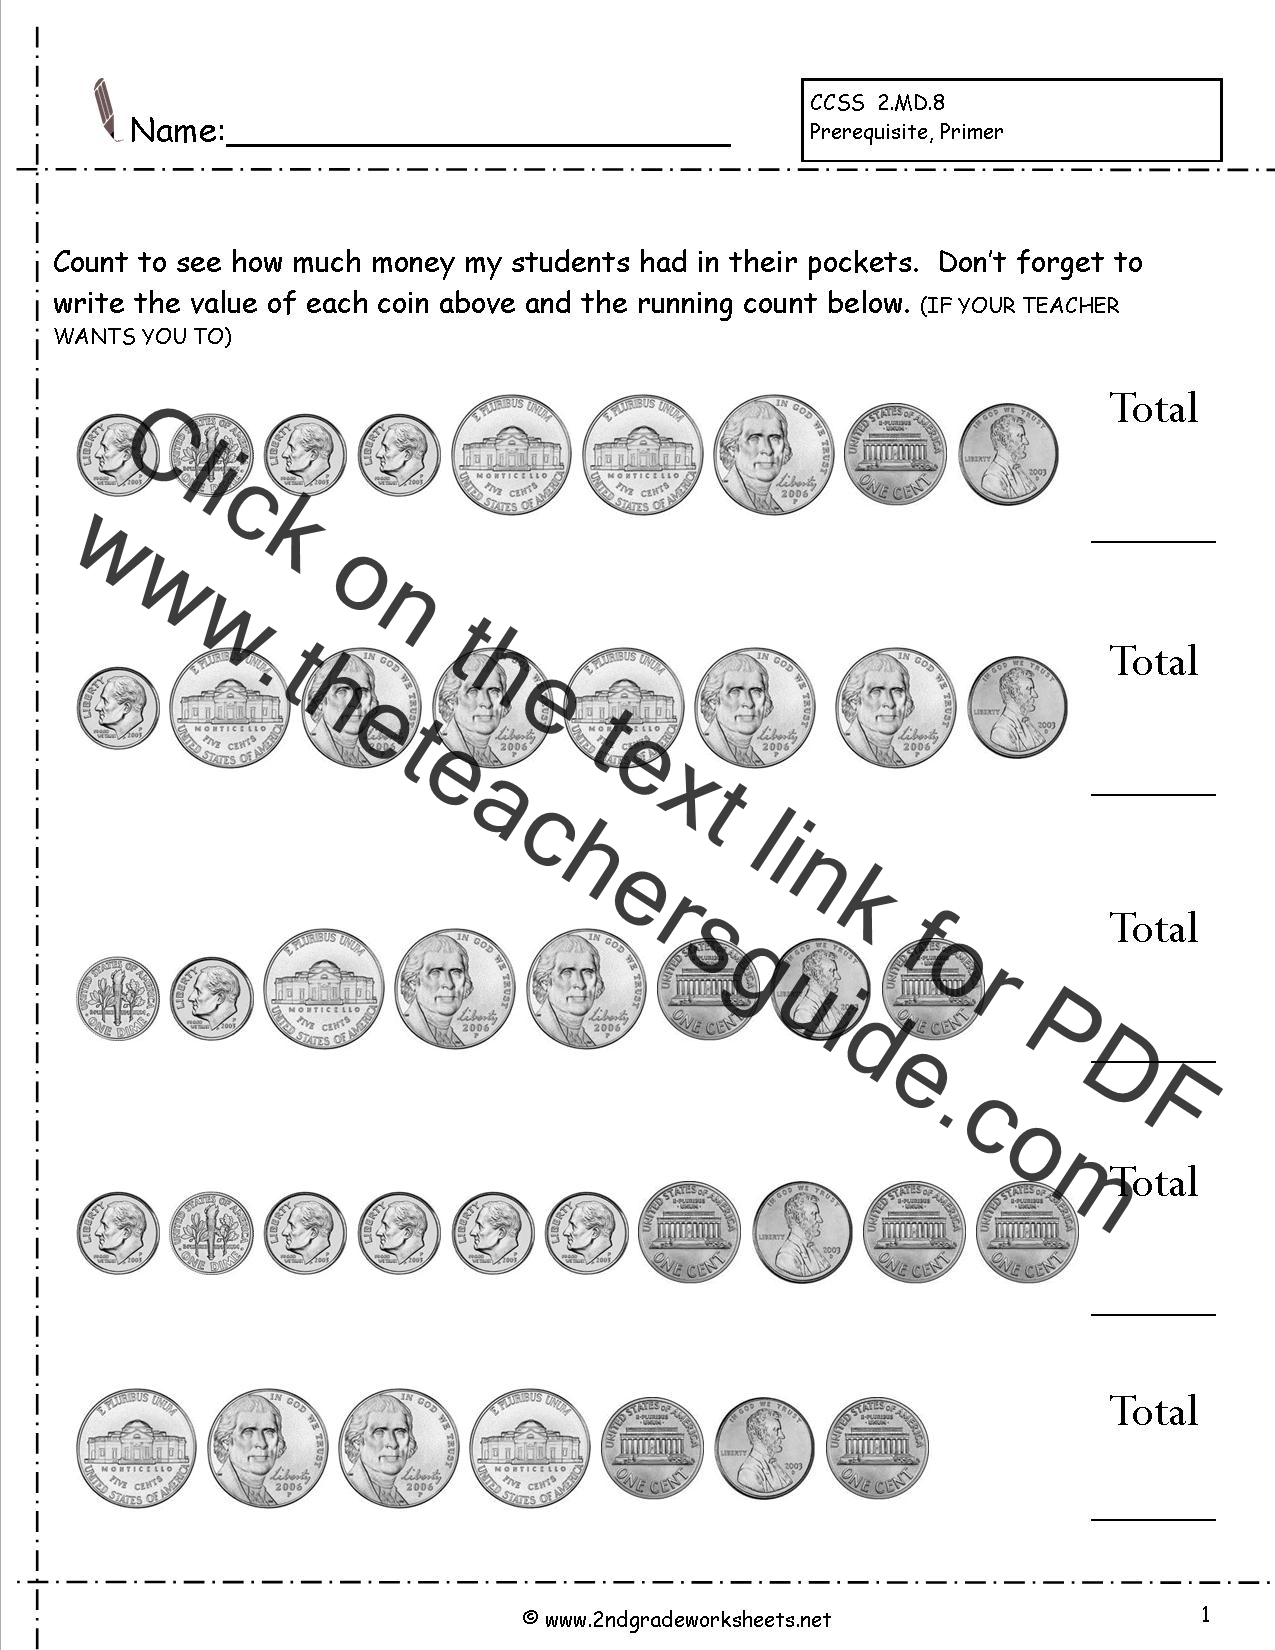 Free Math Worksheets and Printouts – Free Math Worksheets for 2nd Grade